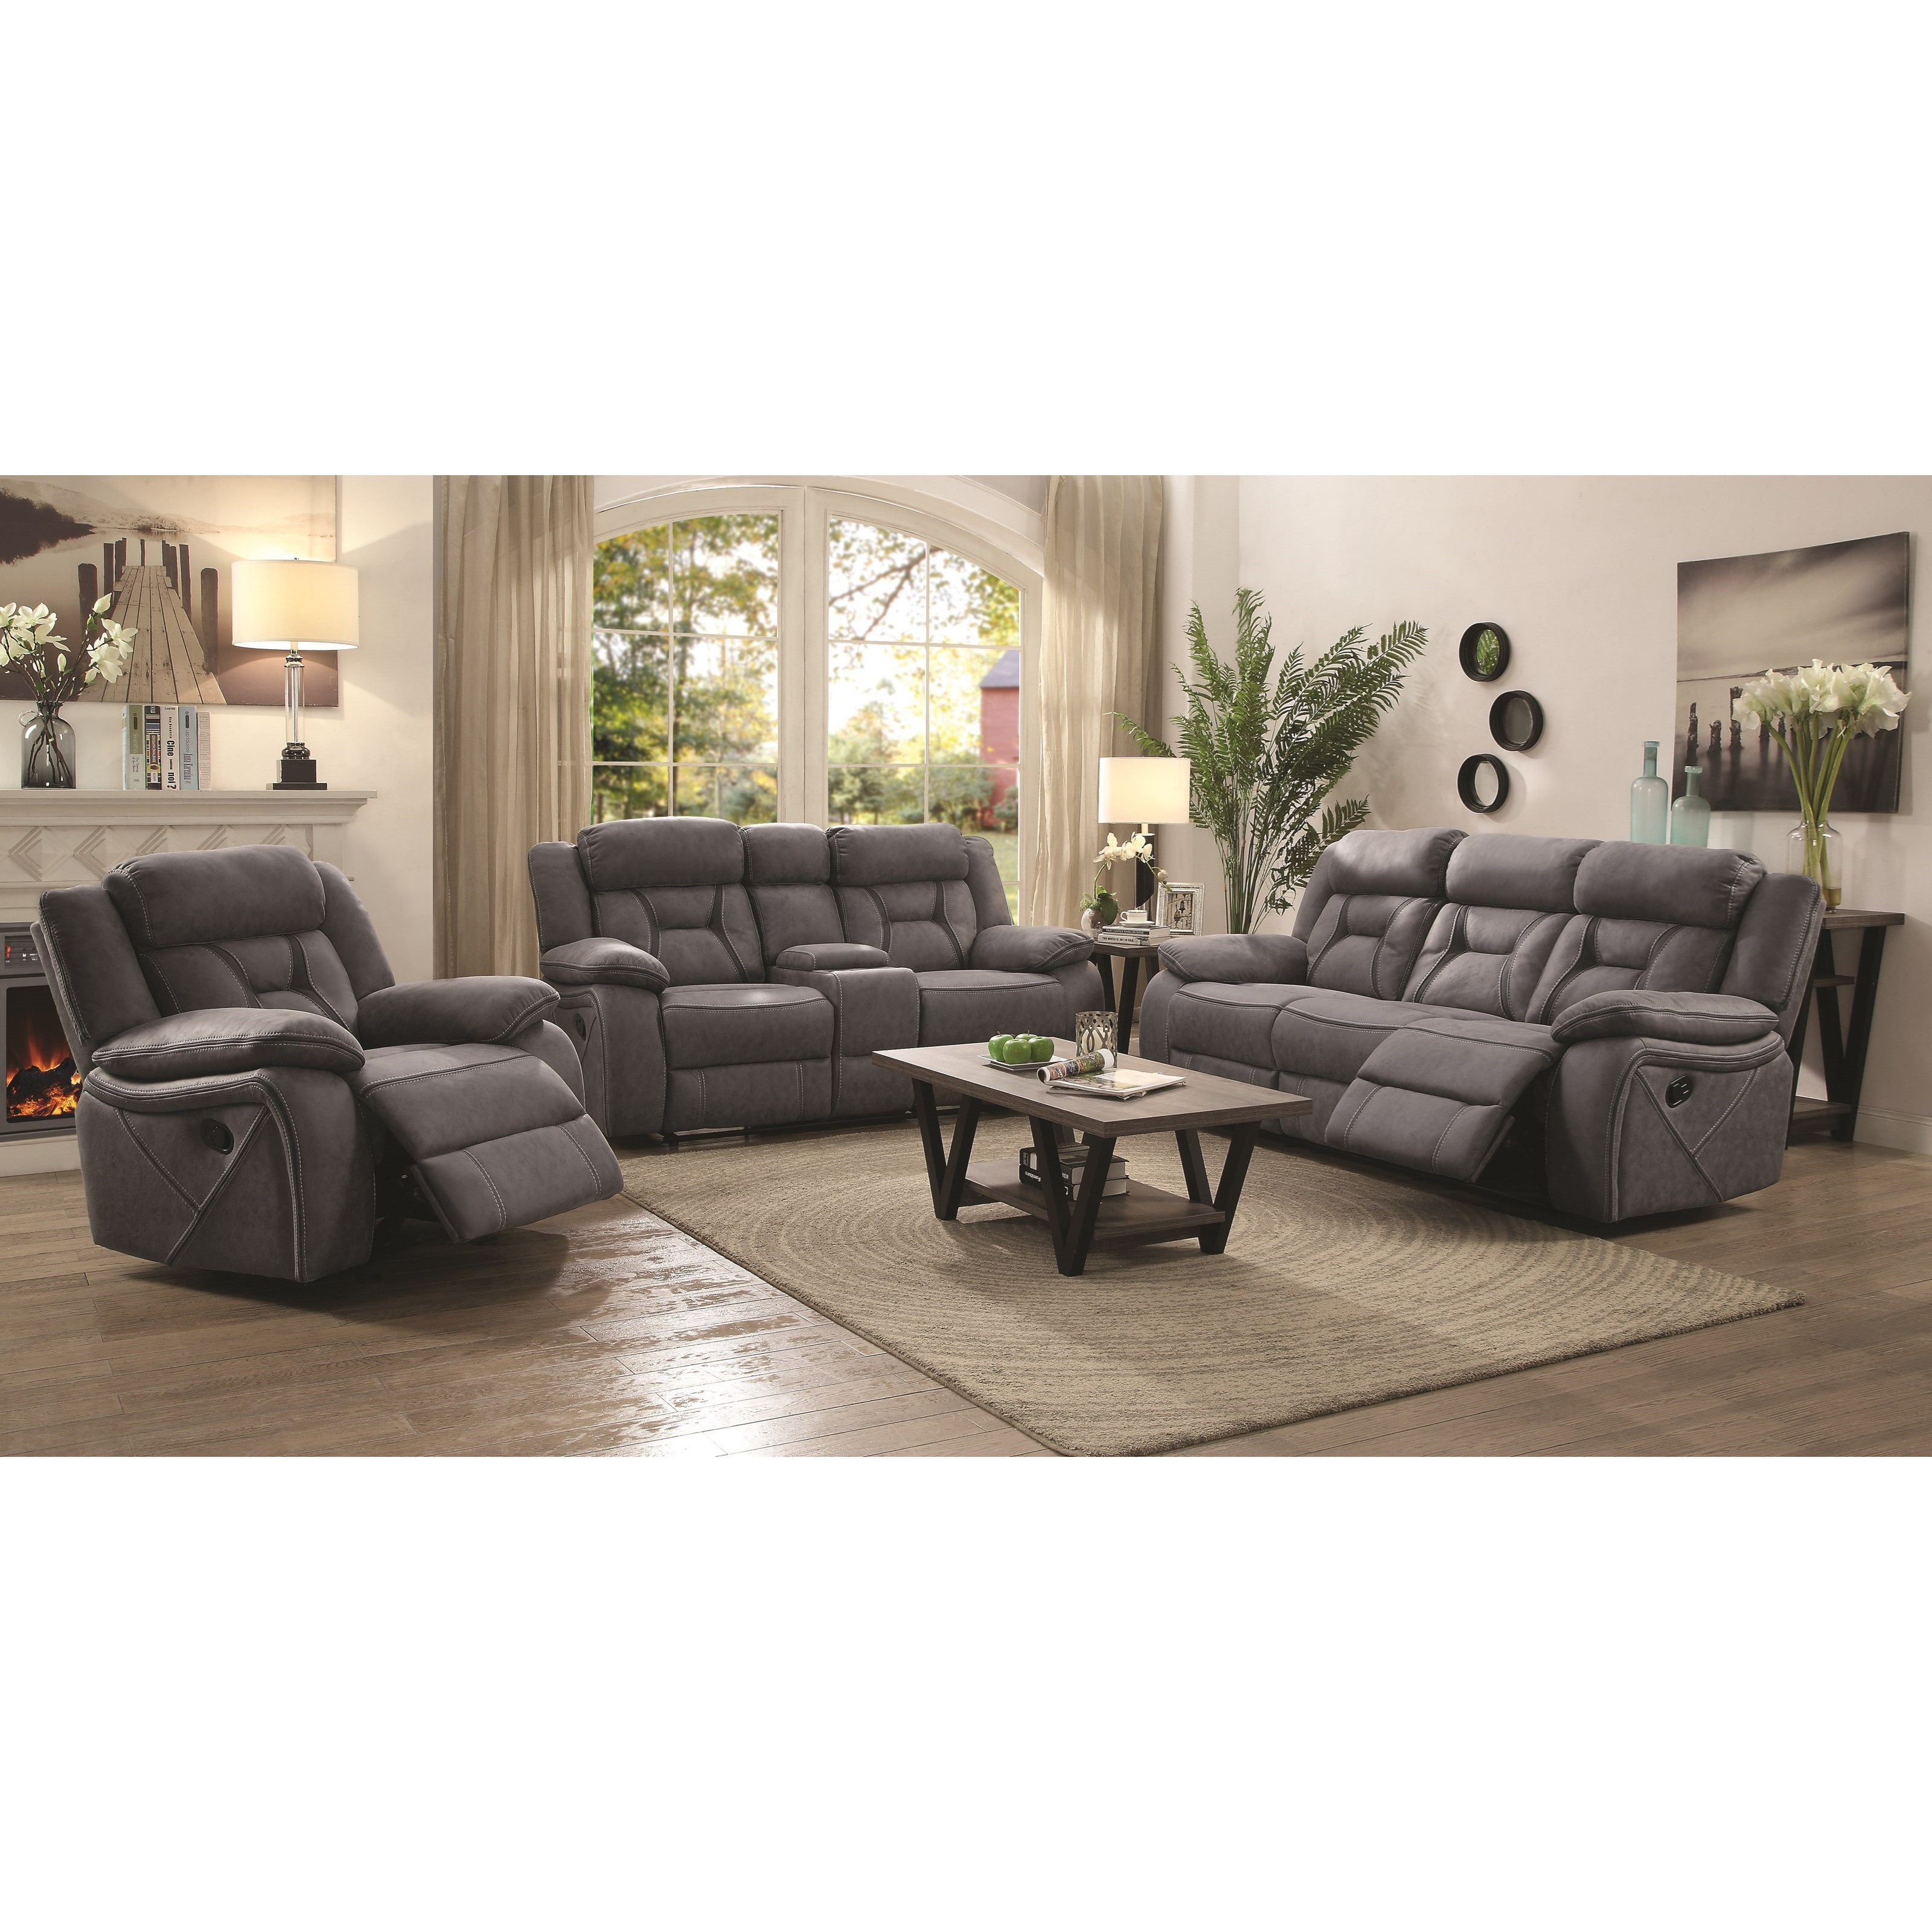 Coaster Houston Reclining Living Room Group - Item Number: 60226 Living Room Group 1